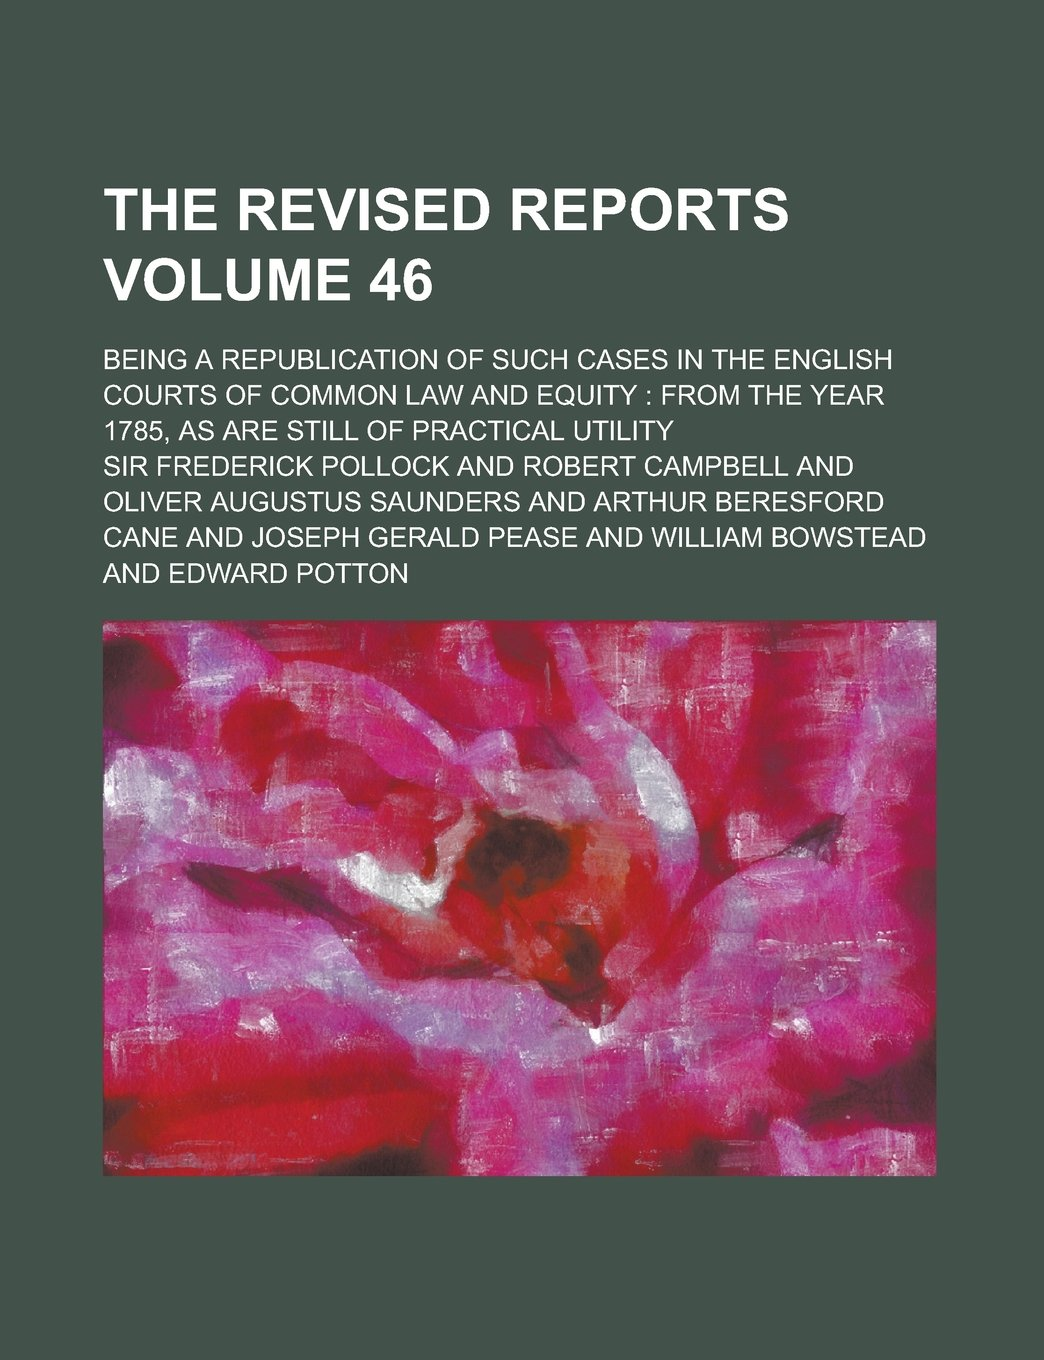 Download The Revised Reports; Being a Republication of Such Cases in the English Courts of Common Law and Equity: from the Year 1785, as are Still of Practical Utility Volume 46 ebook